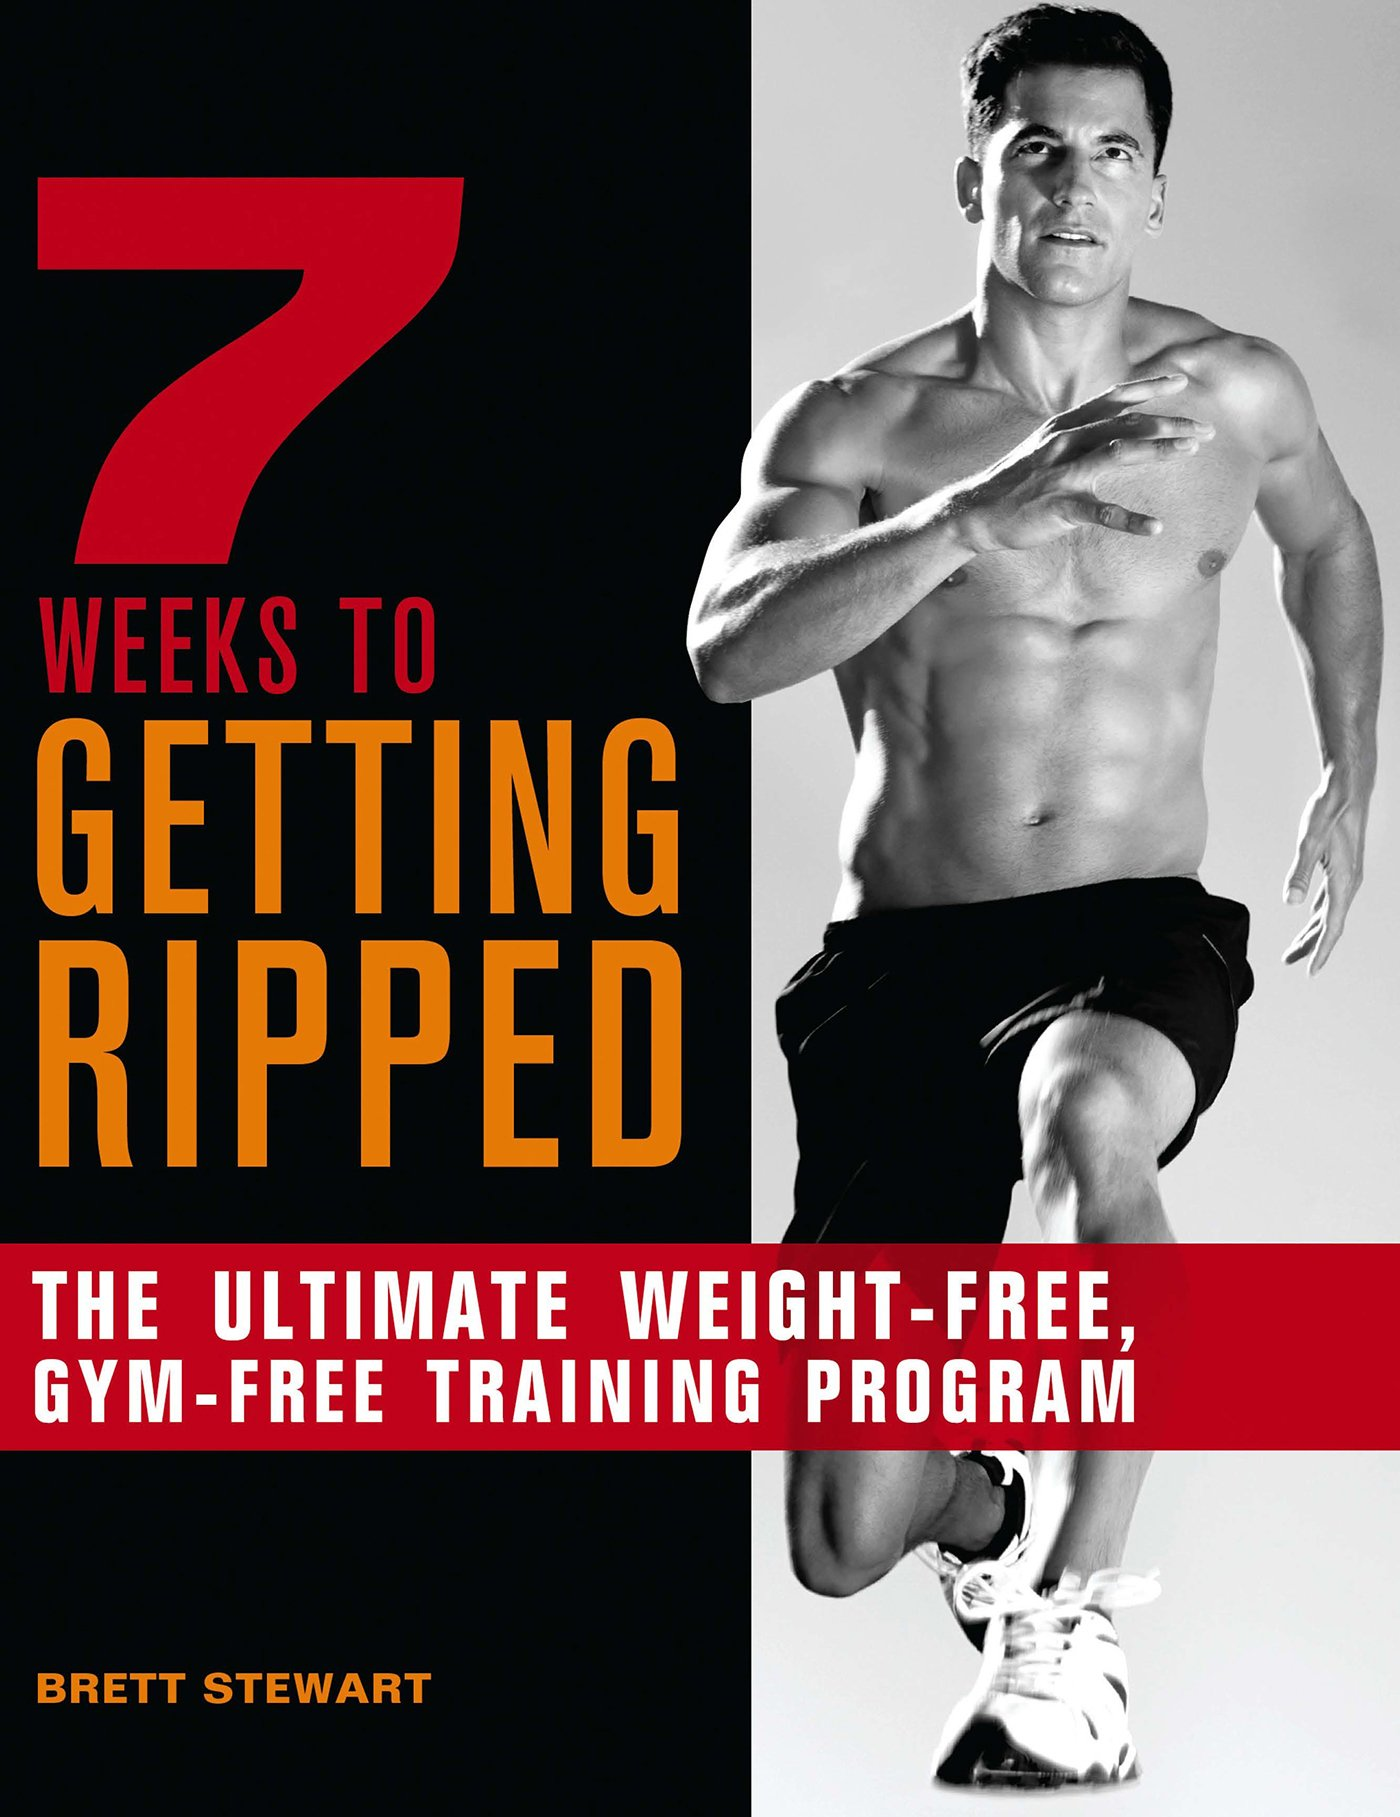 Weeks Getting Ripped Ultimate Weight Free product image